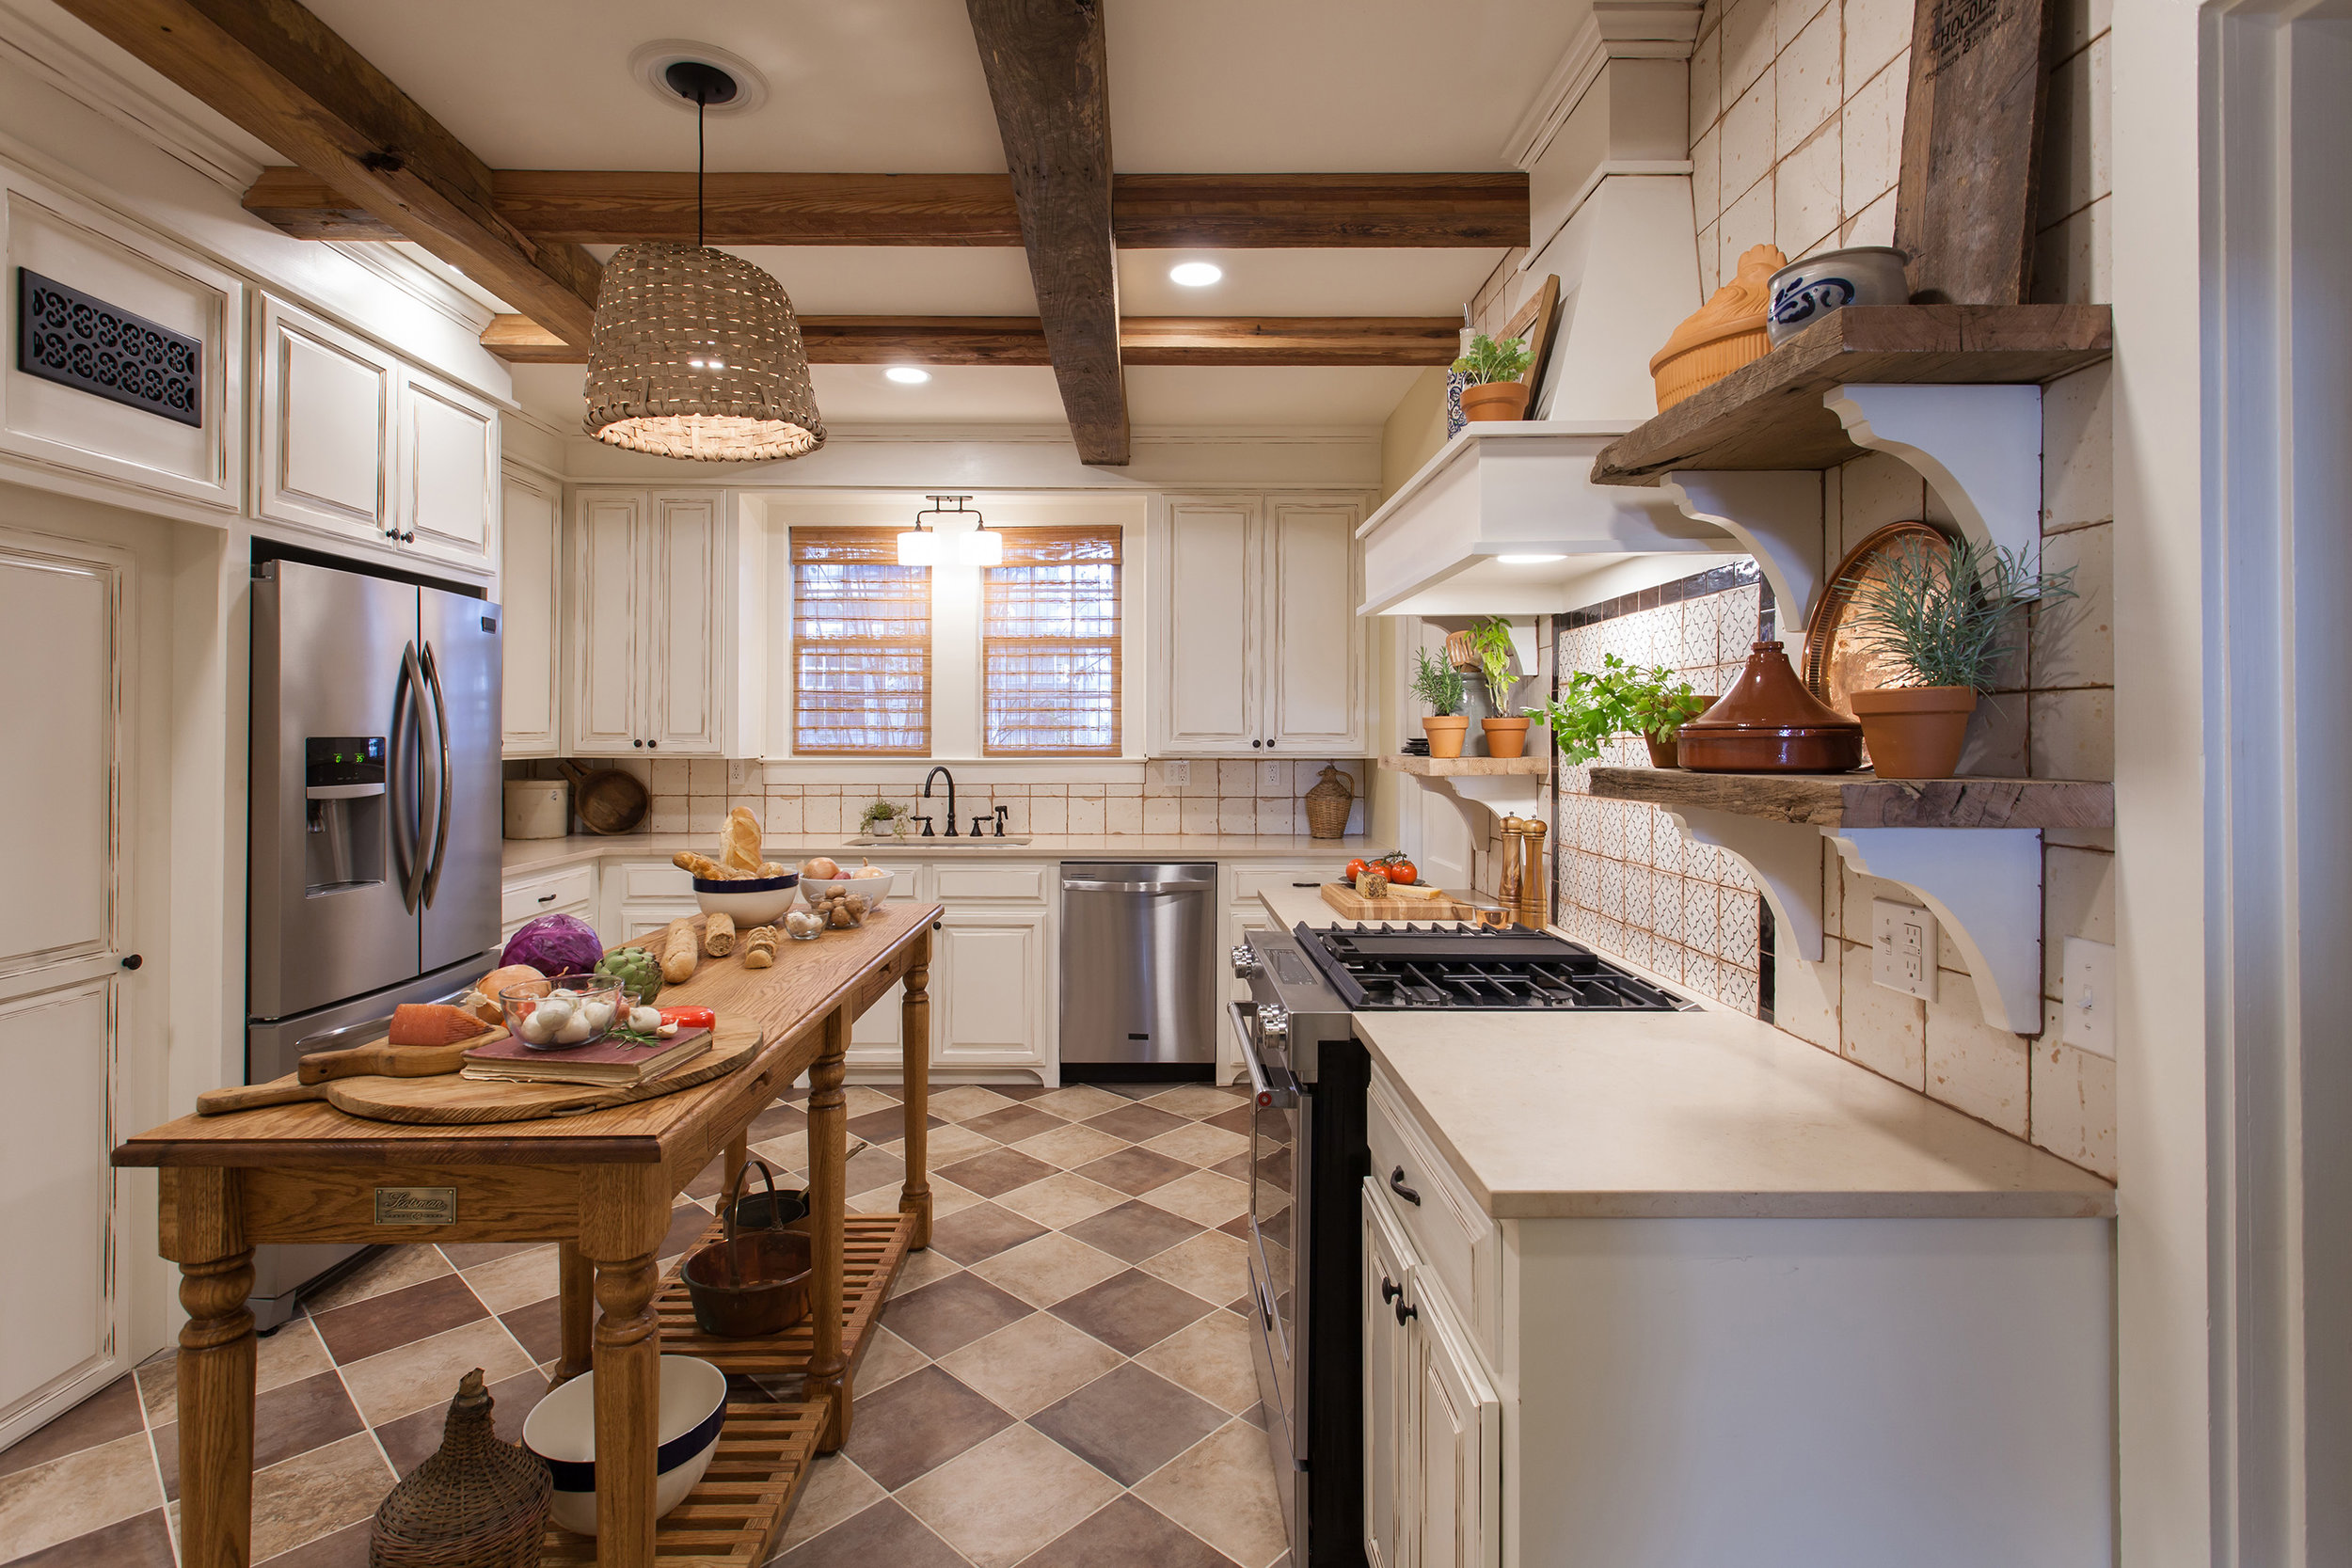 Renovated Kitchen Design - French Country